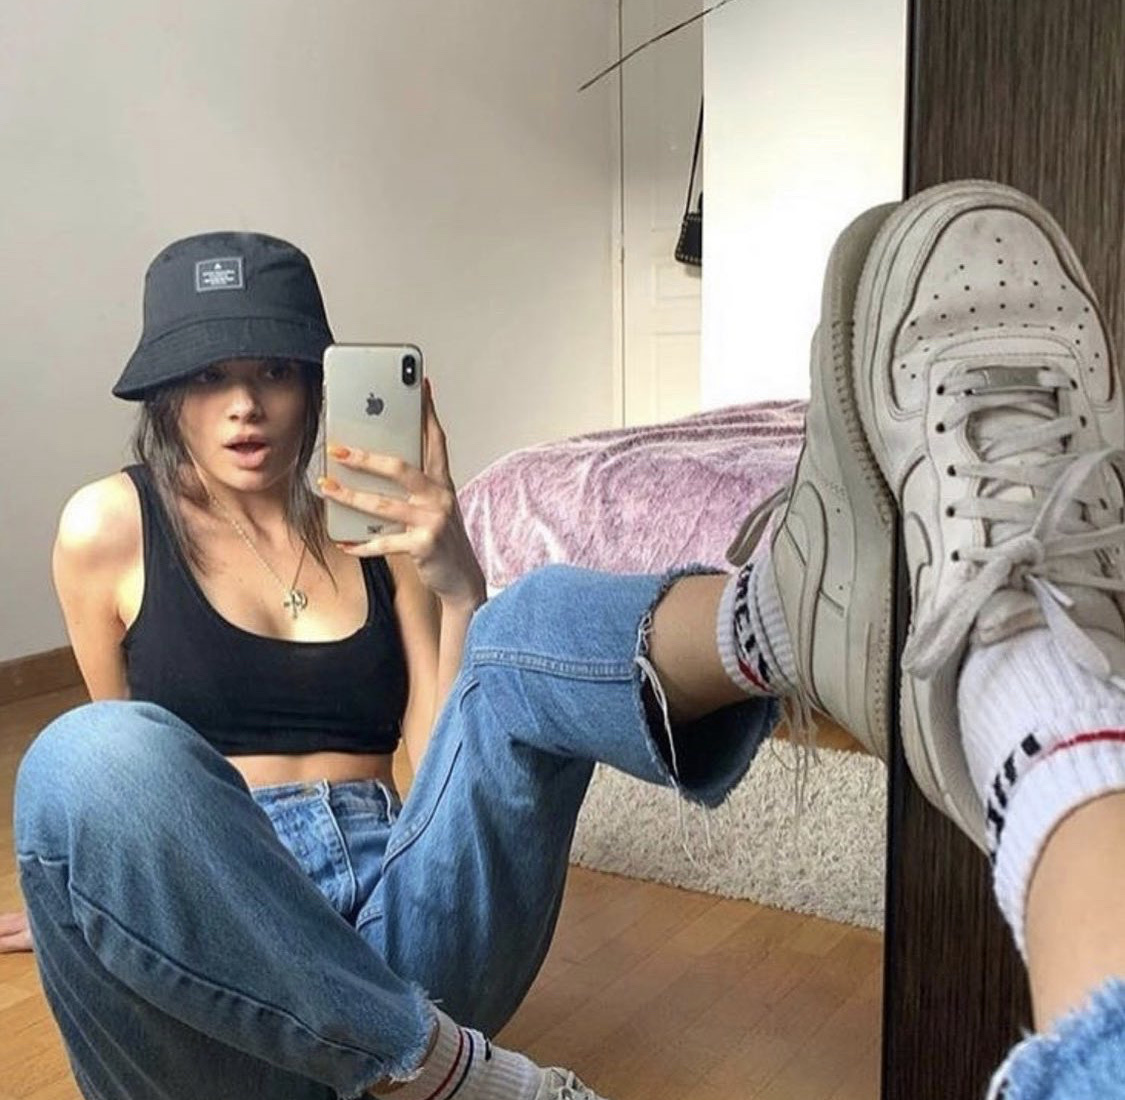 59 Images About Do You Kno Da Vibez On We Heart It See More About Bucket Hat Hat And Hair